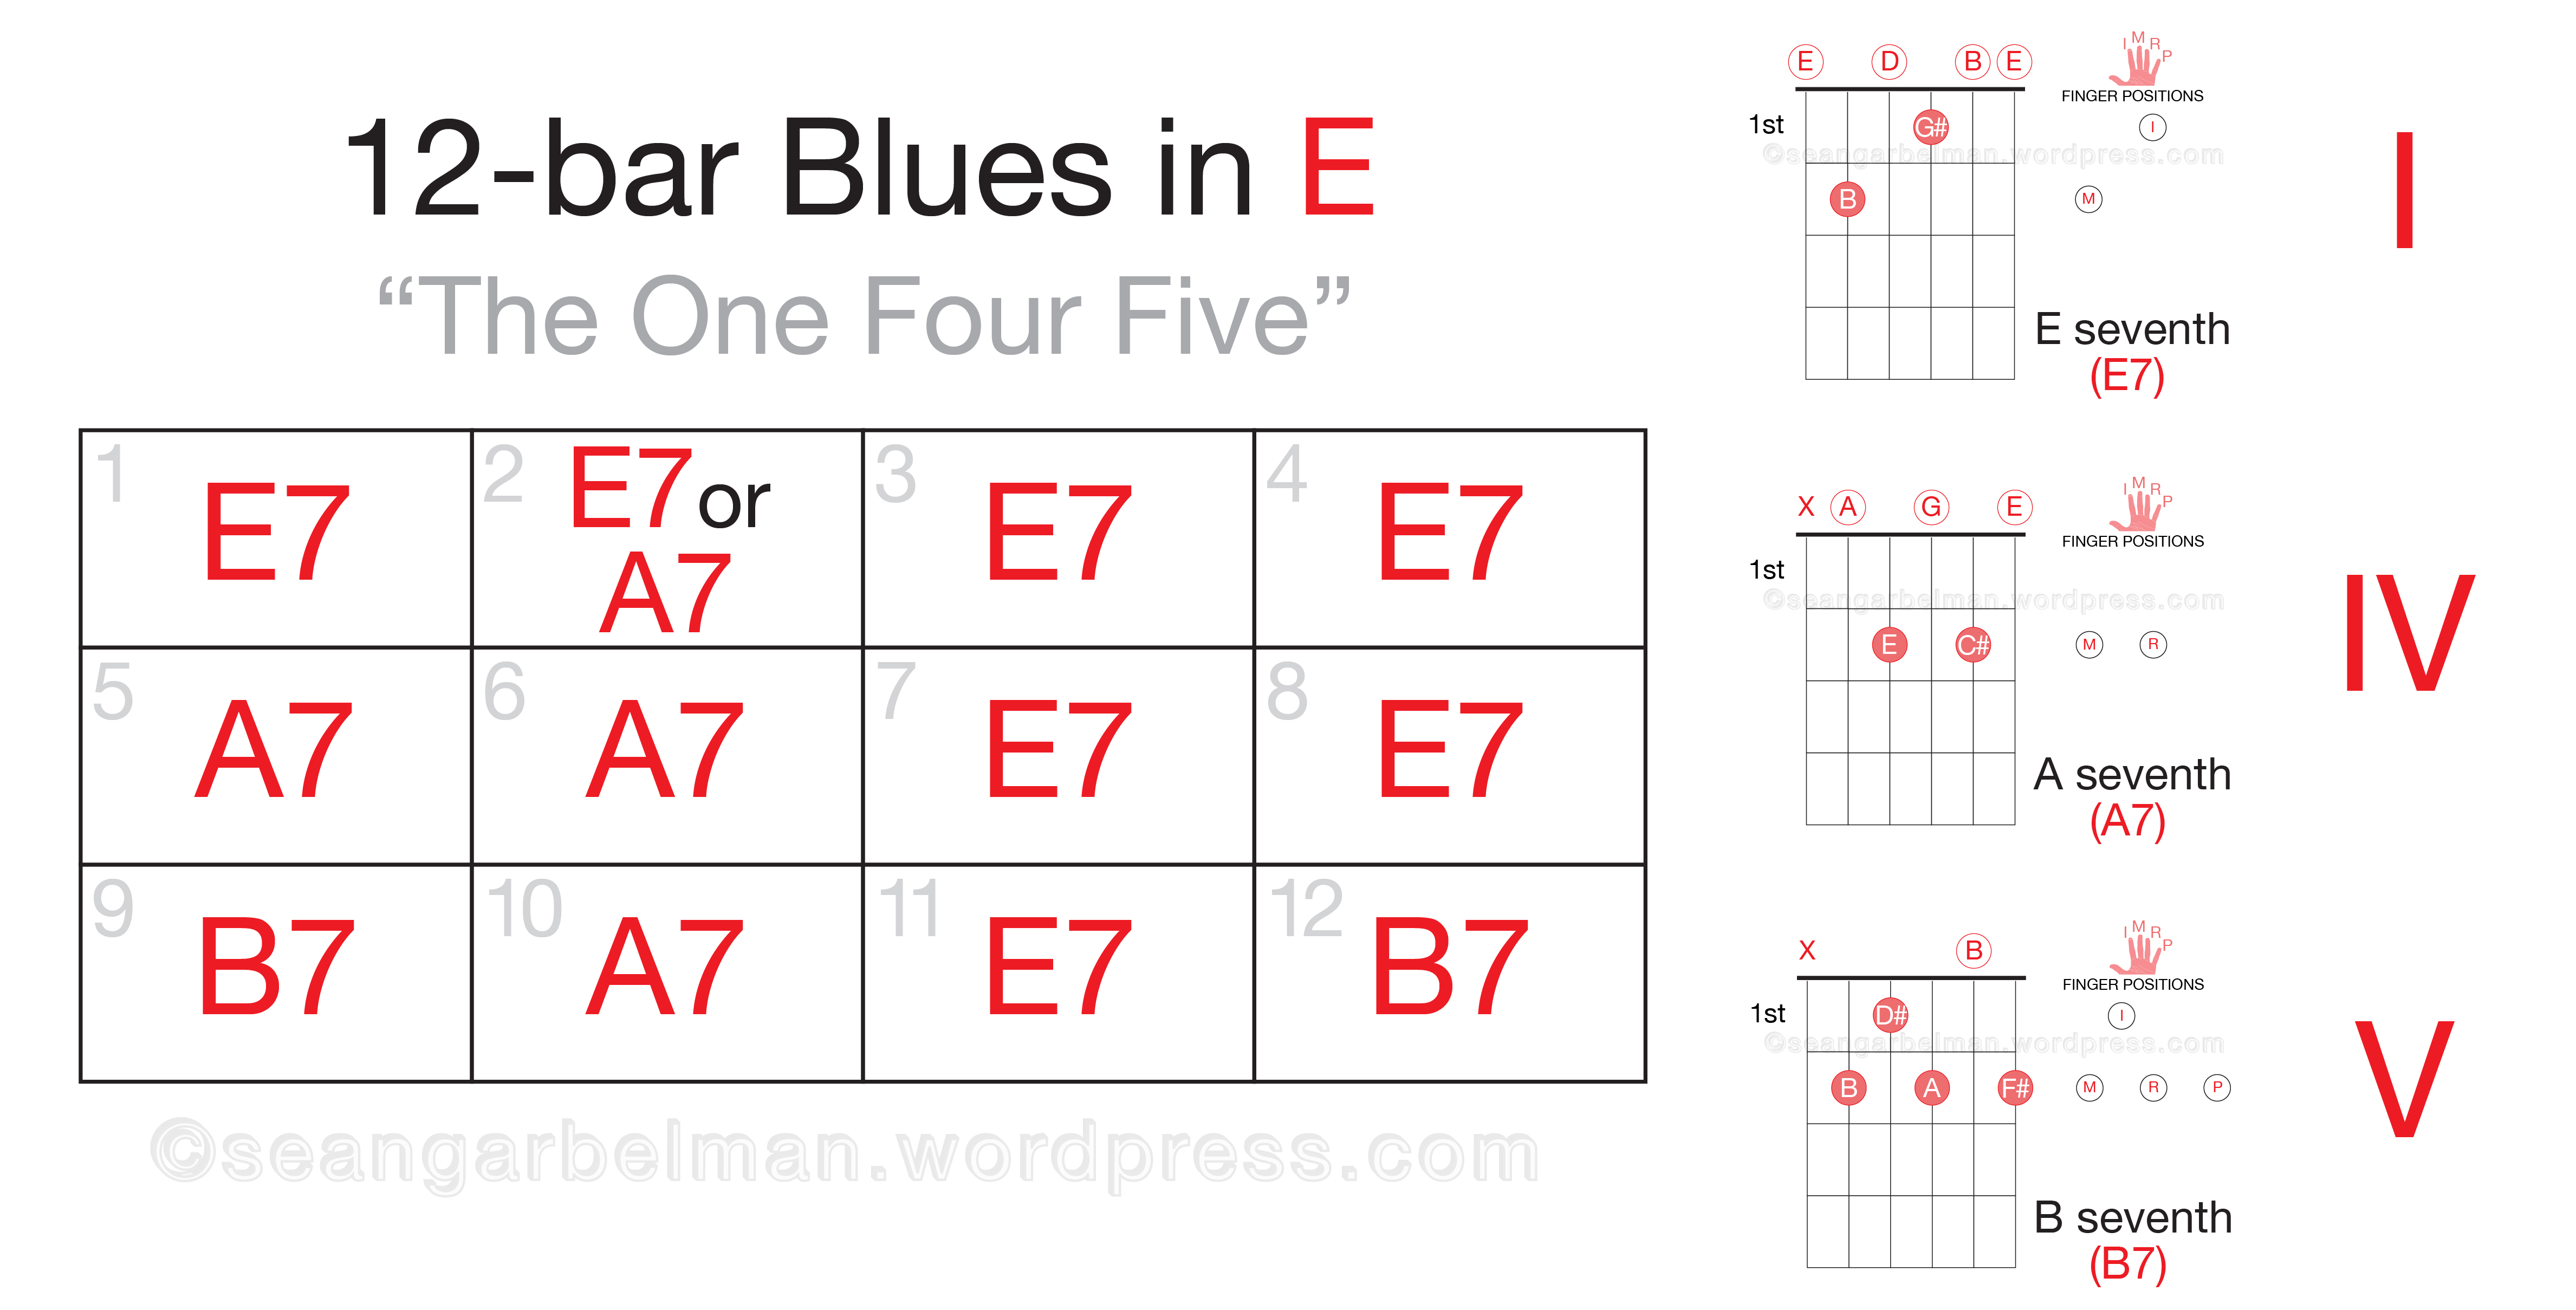 12 bar blues chords guitar gallery guitar chords examples 12 bar blues chord progression guitar images guitar chords examples just as i am chord chart hexwebz Image collections